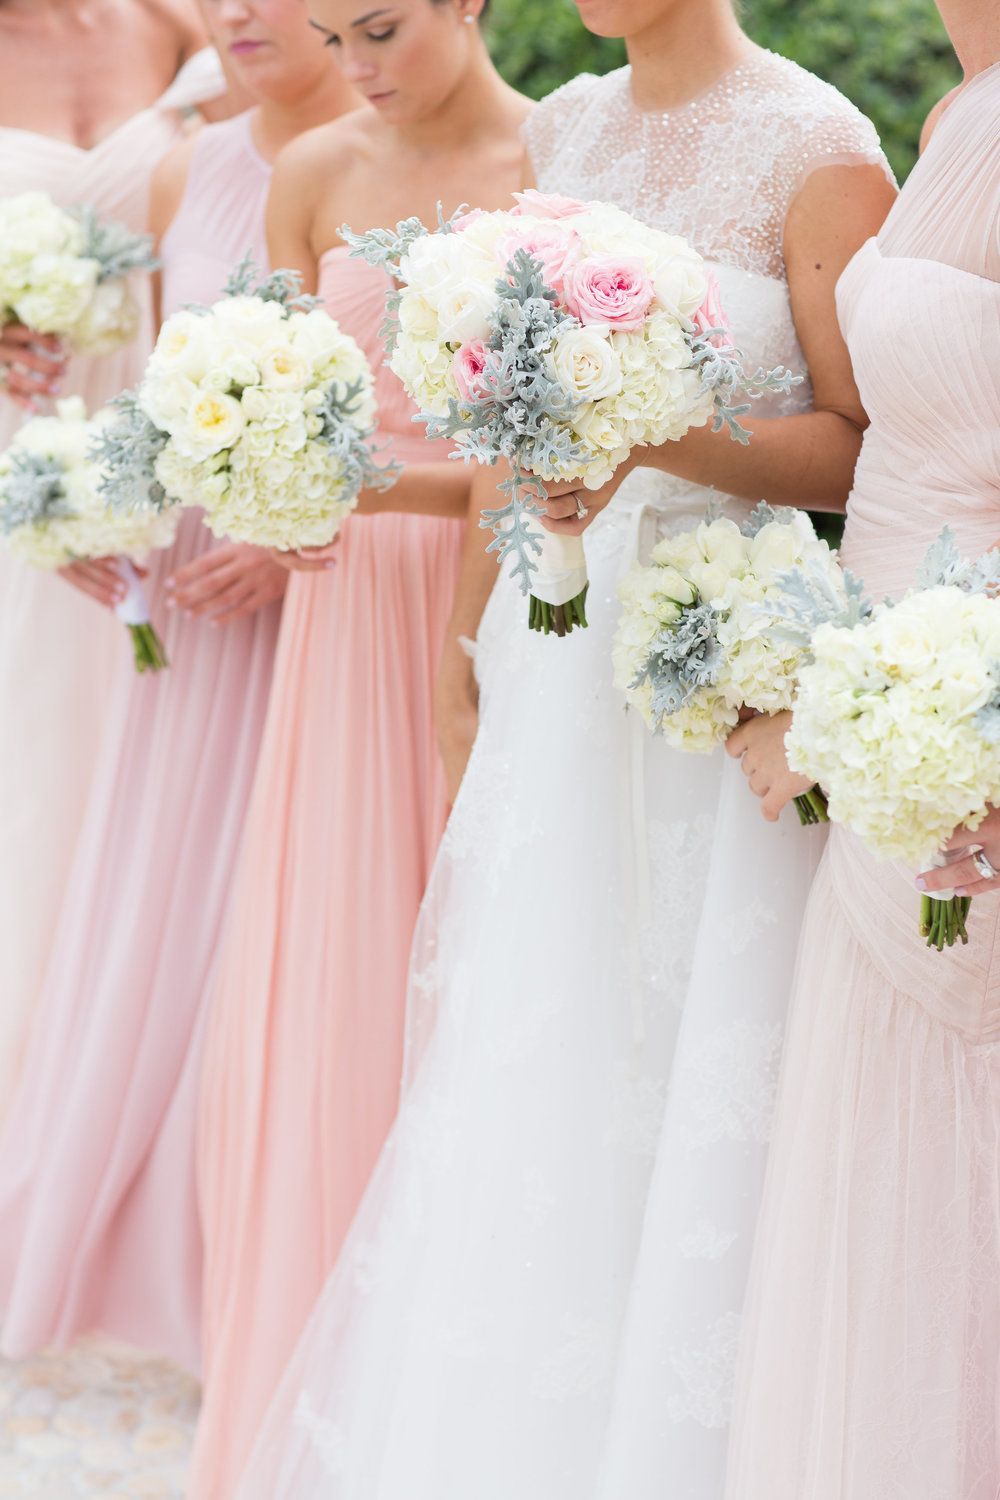 A bride's color scheme often inspired the gift box. Bride Jessica chose blush bridesmaids dresses and fabulous white and blush bouquets with touches of lambs ear. Leah Taylor prepared a seaside box to welcome wedding guests to the wedding weekend.